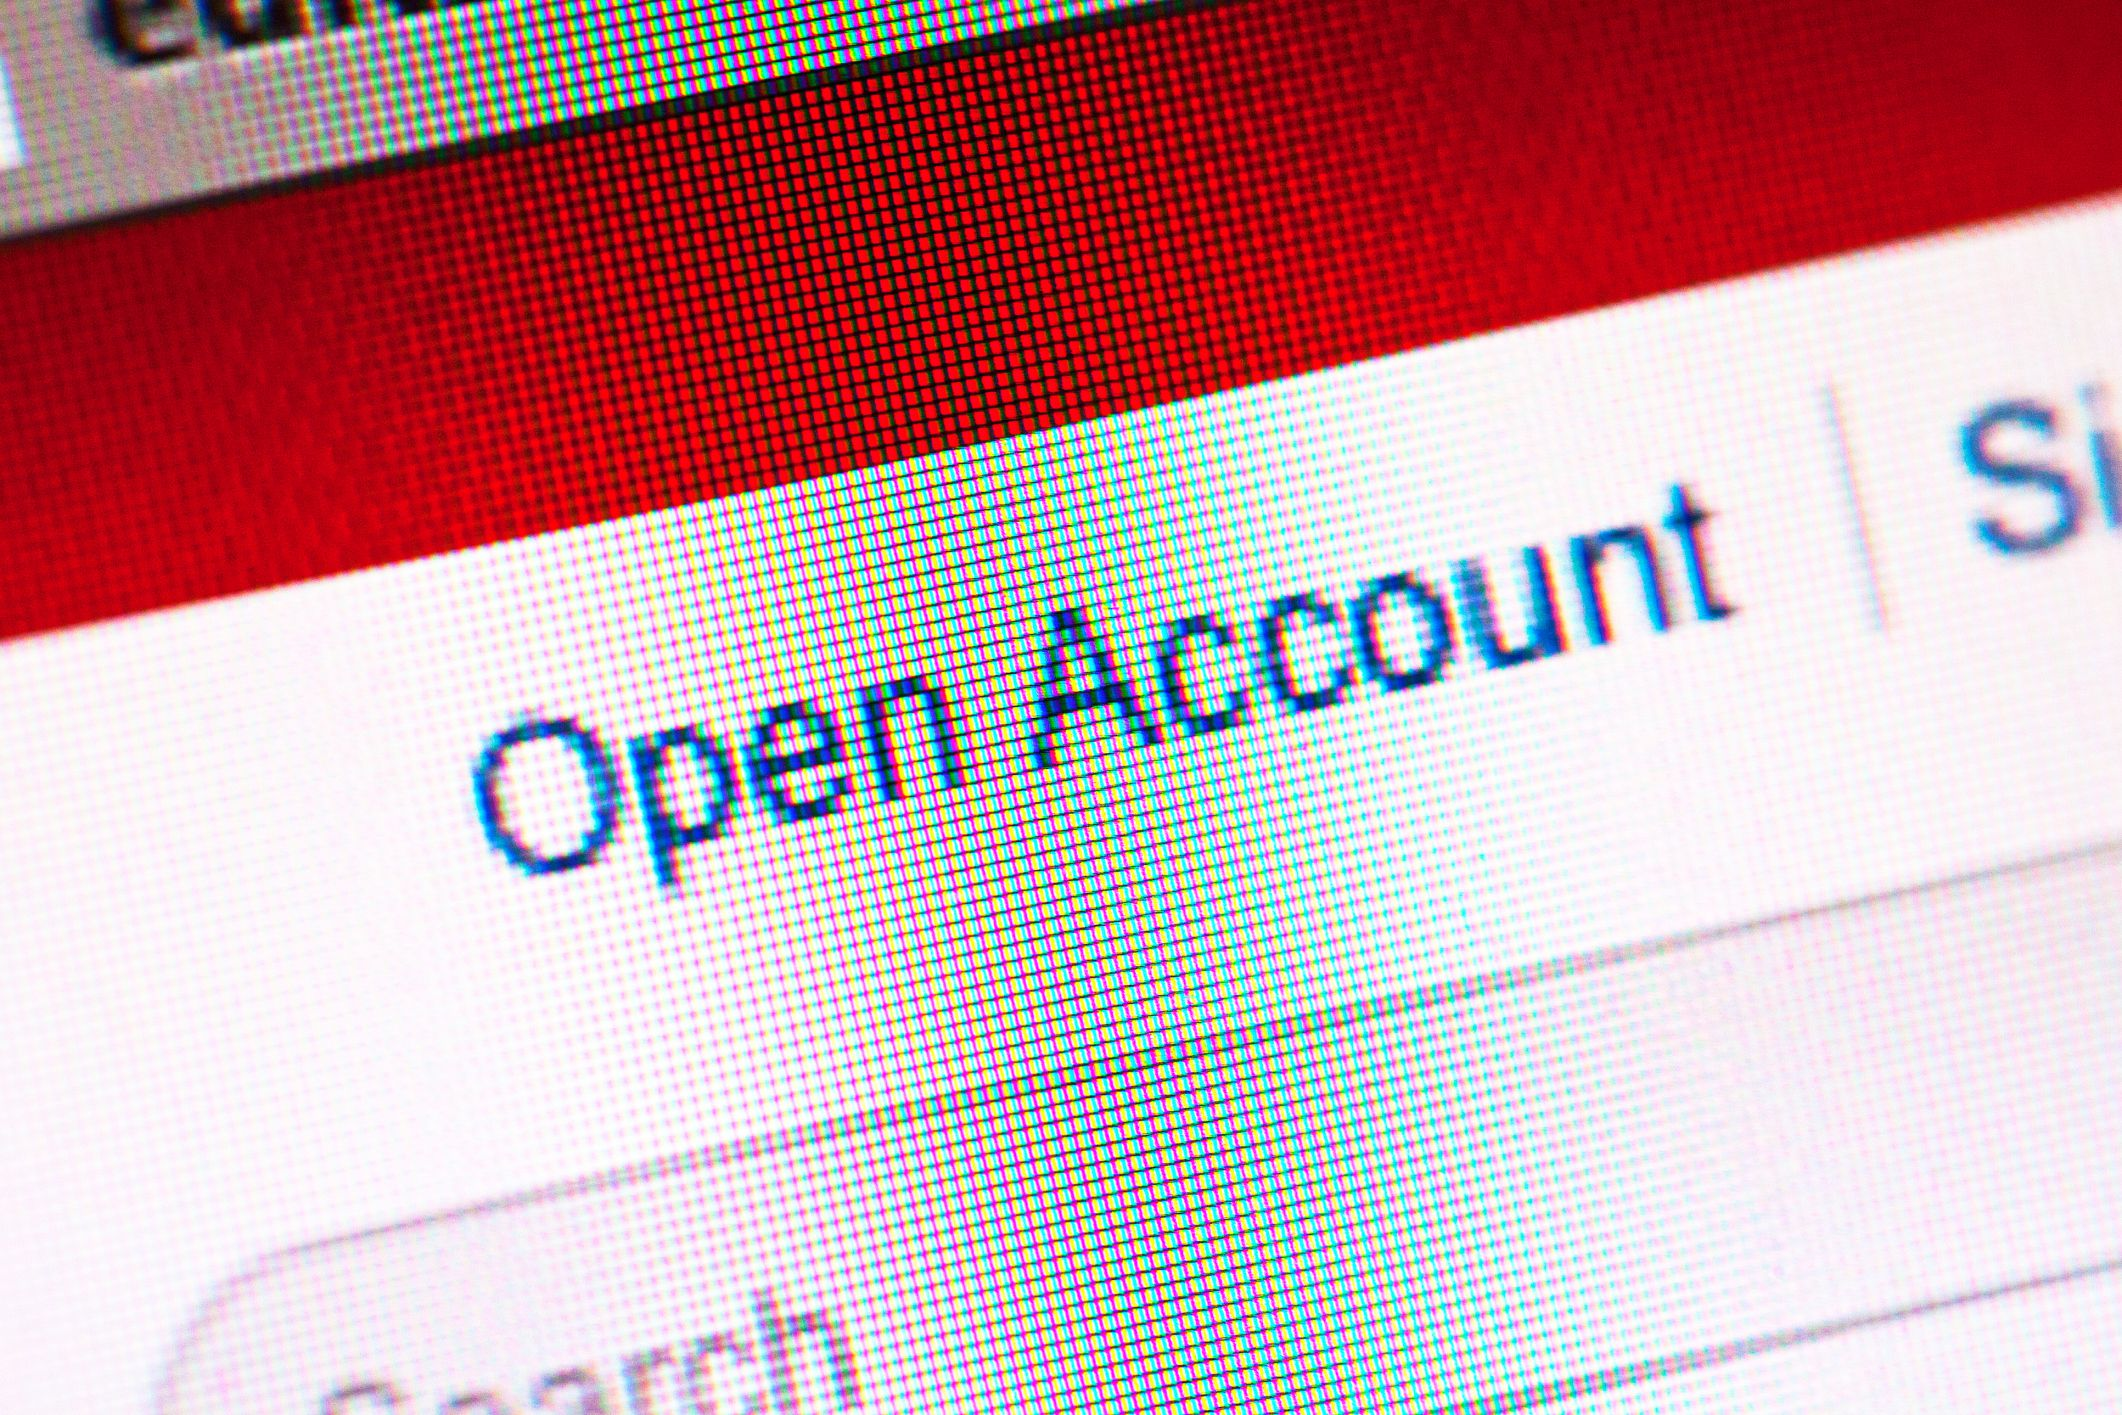 How to Open a Bank Account Online - No Forms Necessary